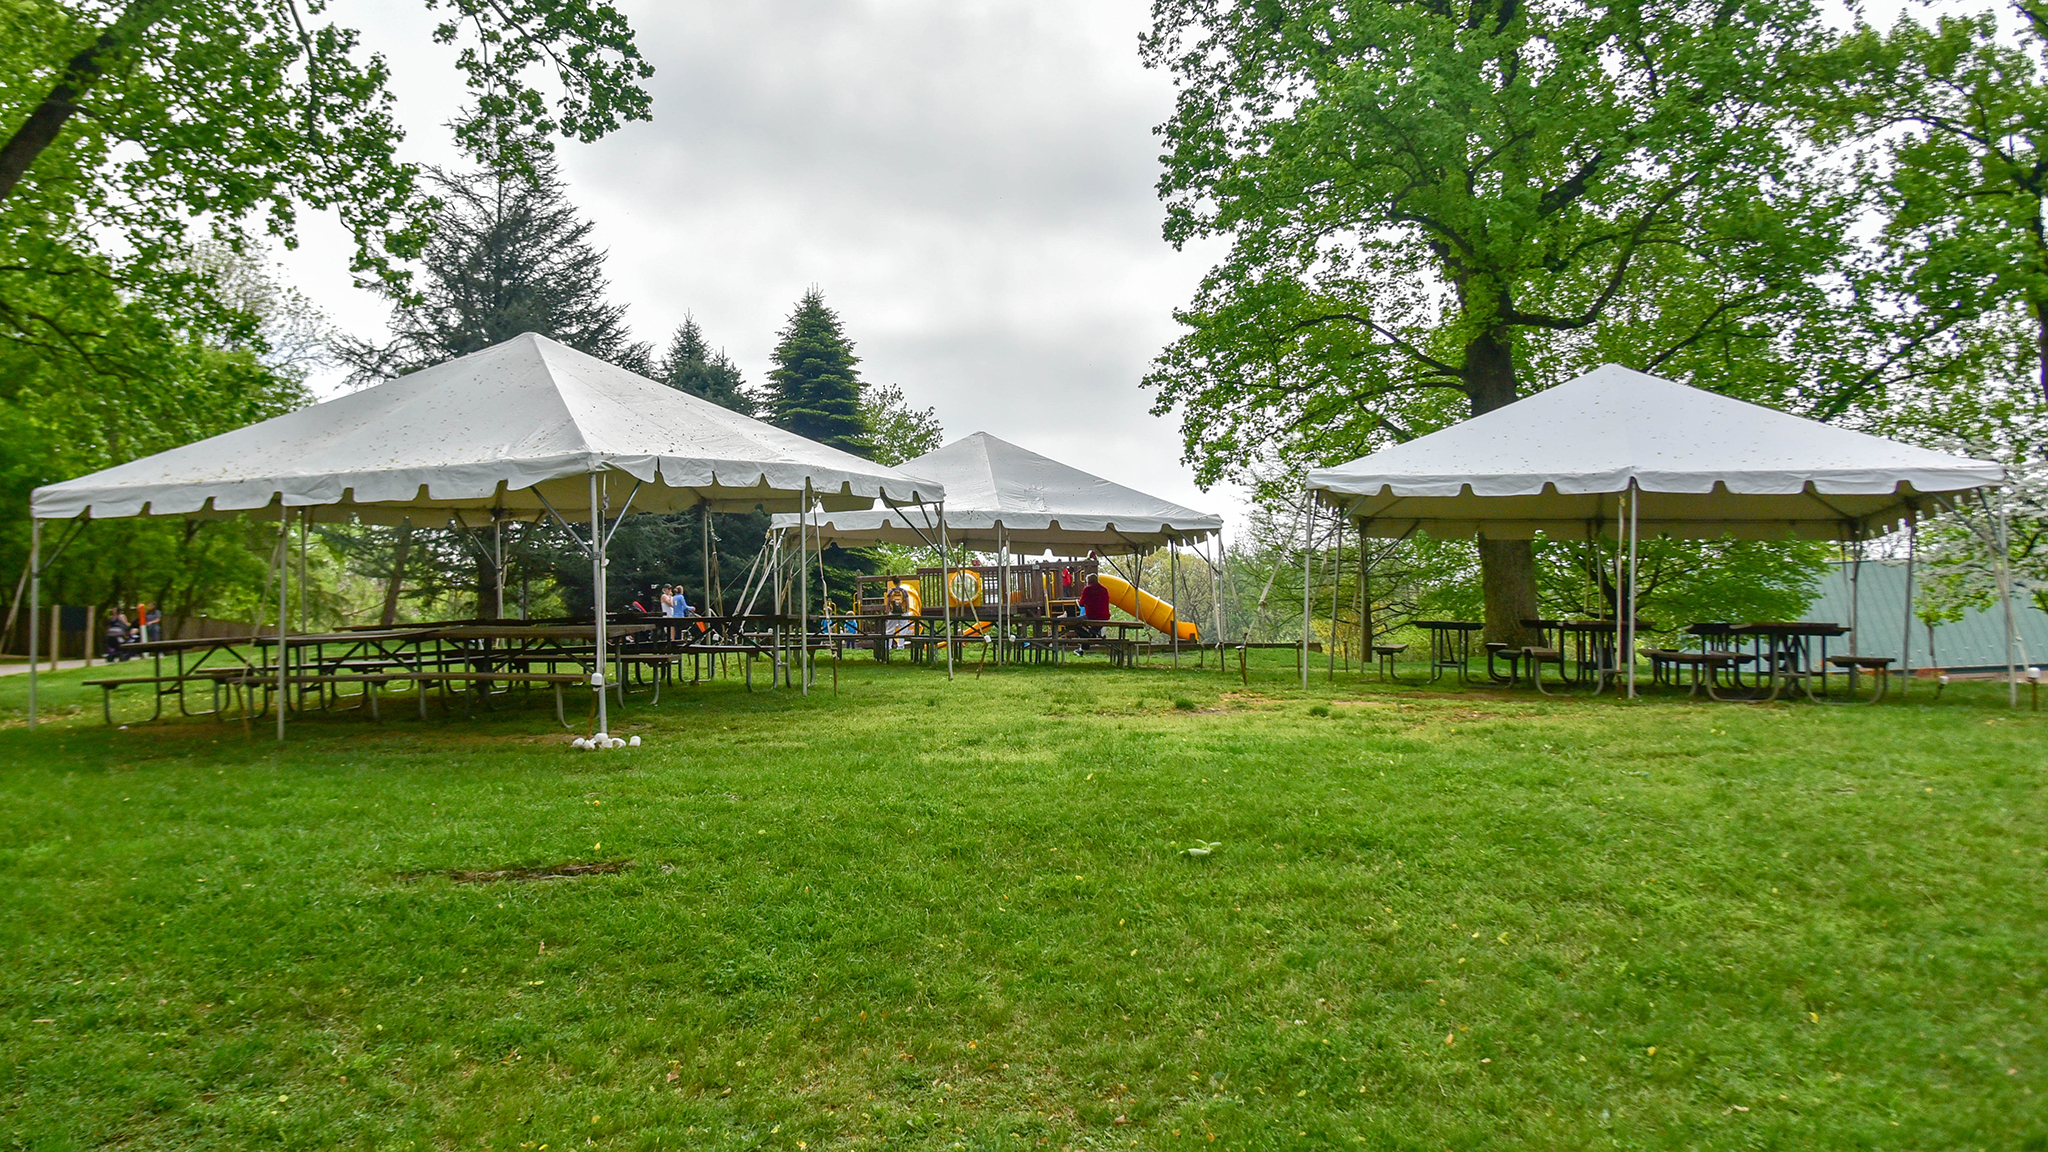 tents and picnic tables in the grass